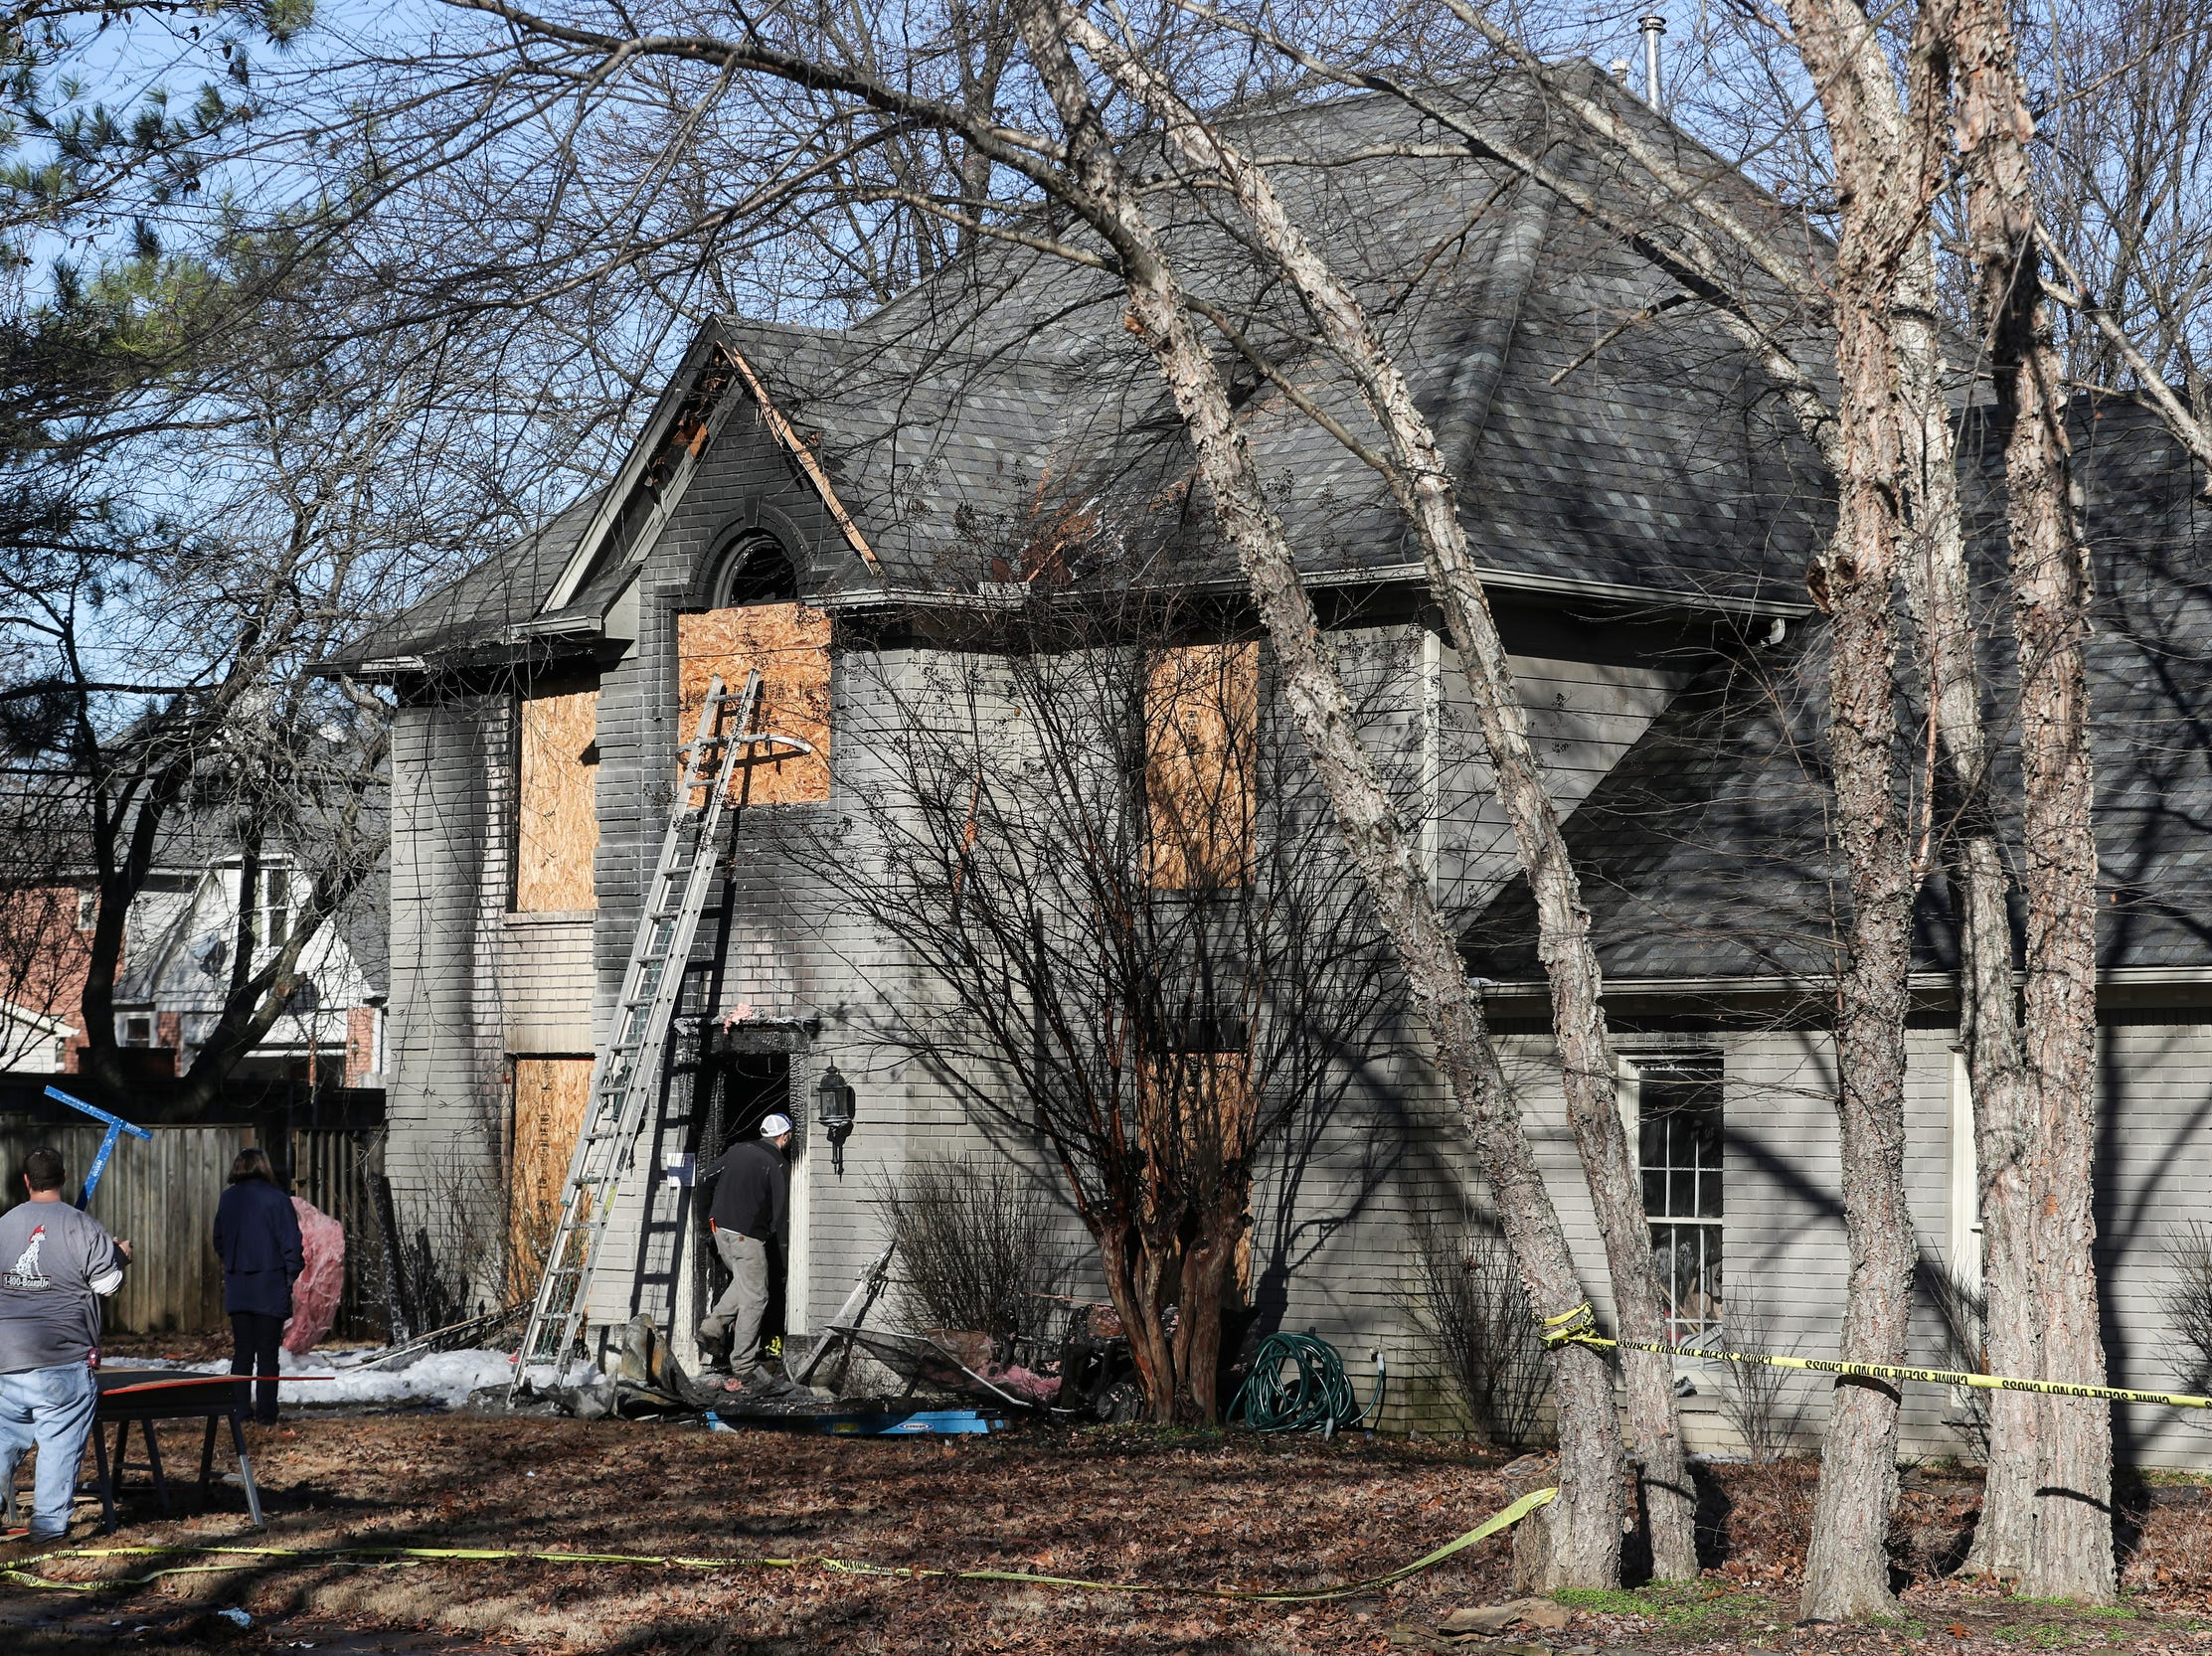 People work to board up the home on Autumn Winds Drive in Collierville on Dec. 24, 2018, after an overnight fire on Christmas Eve killed four people and injured four others.